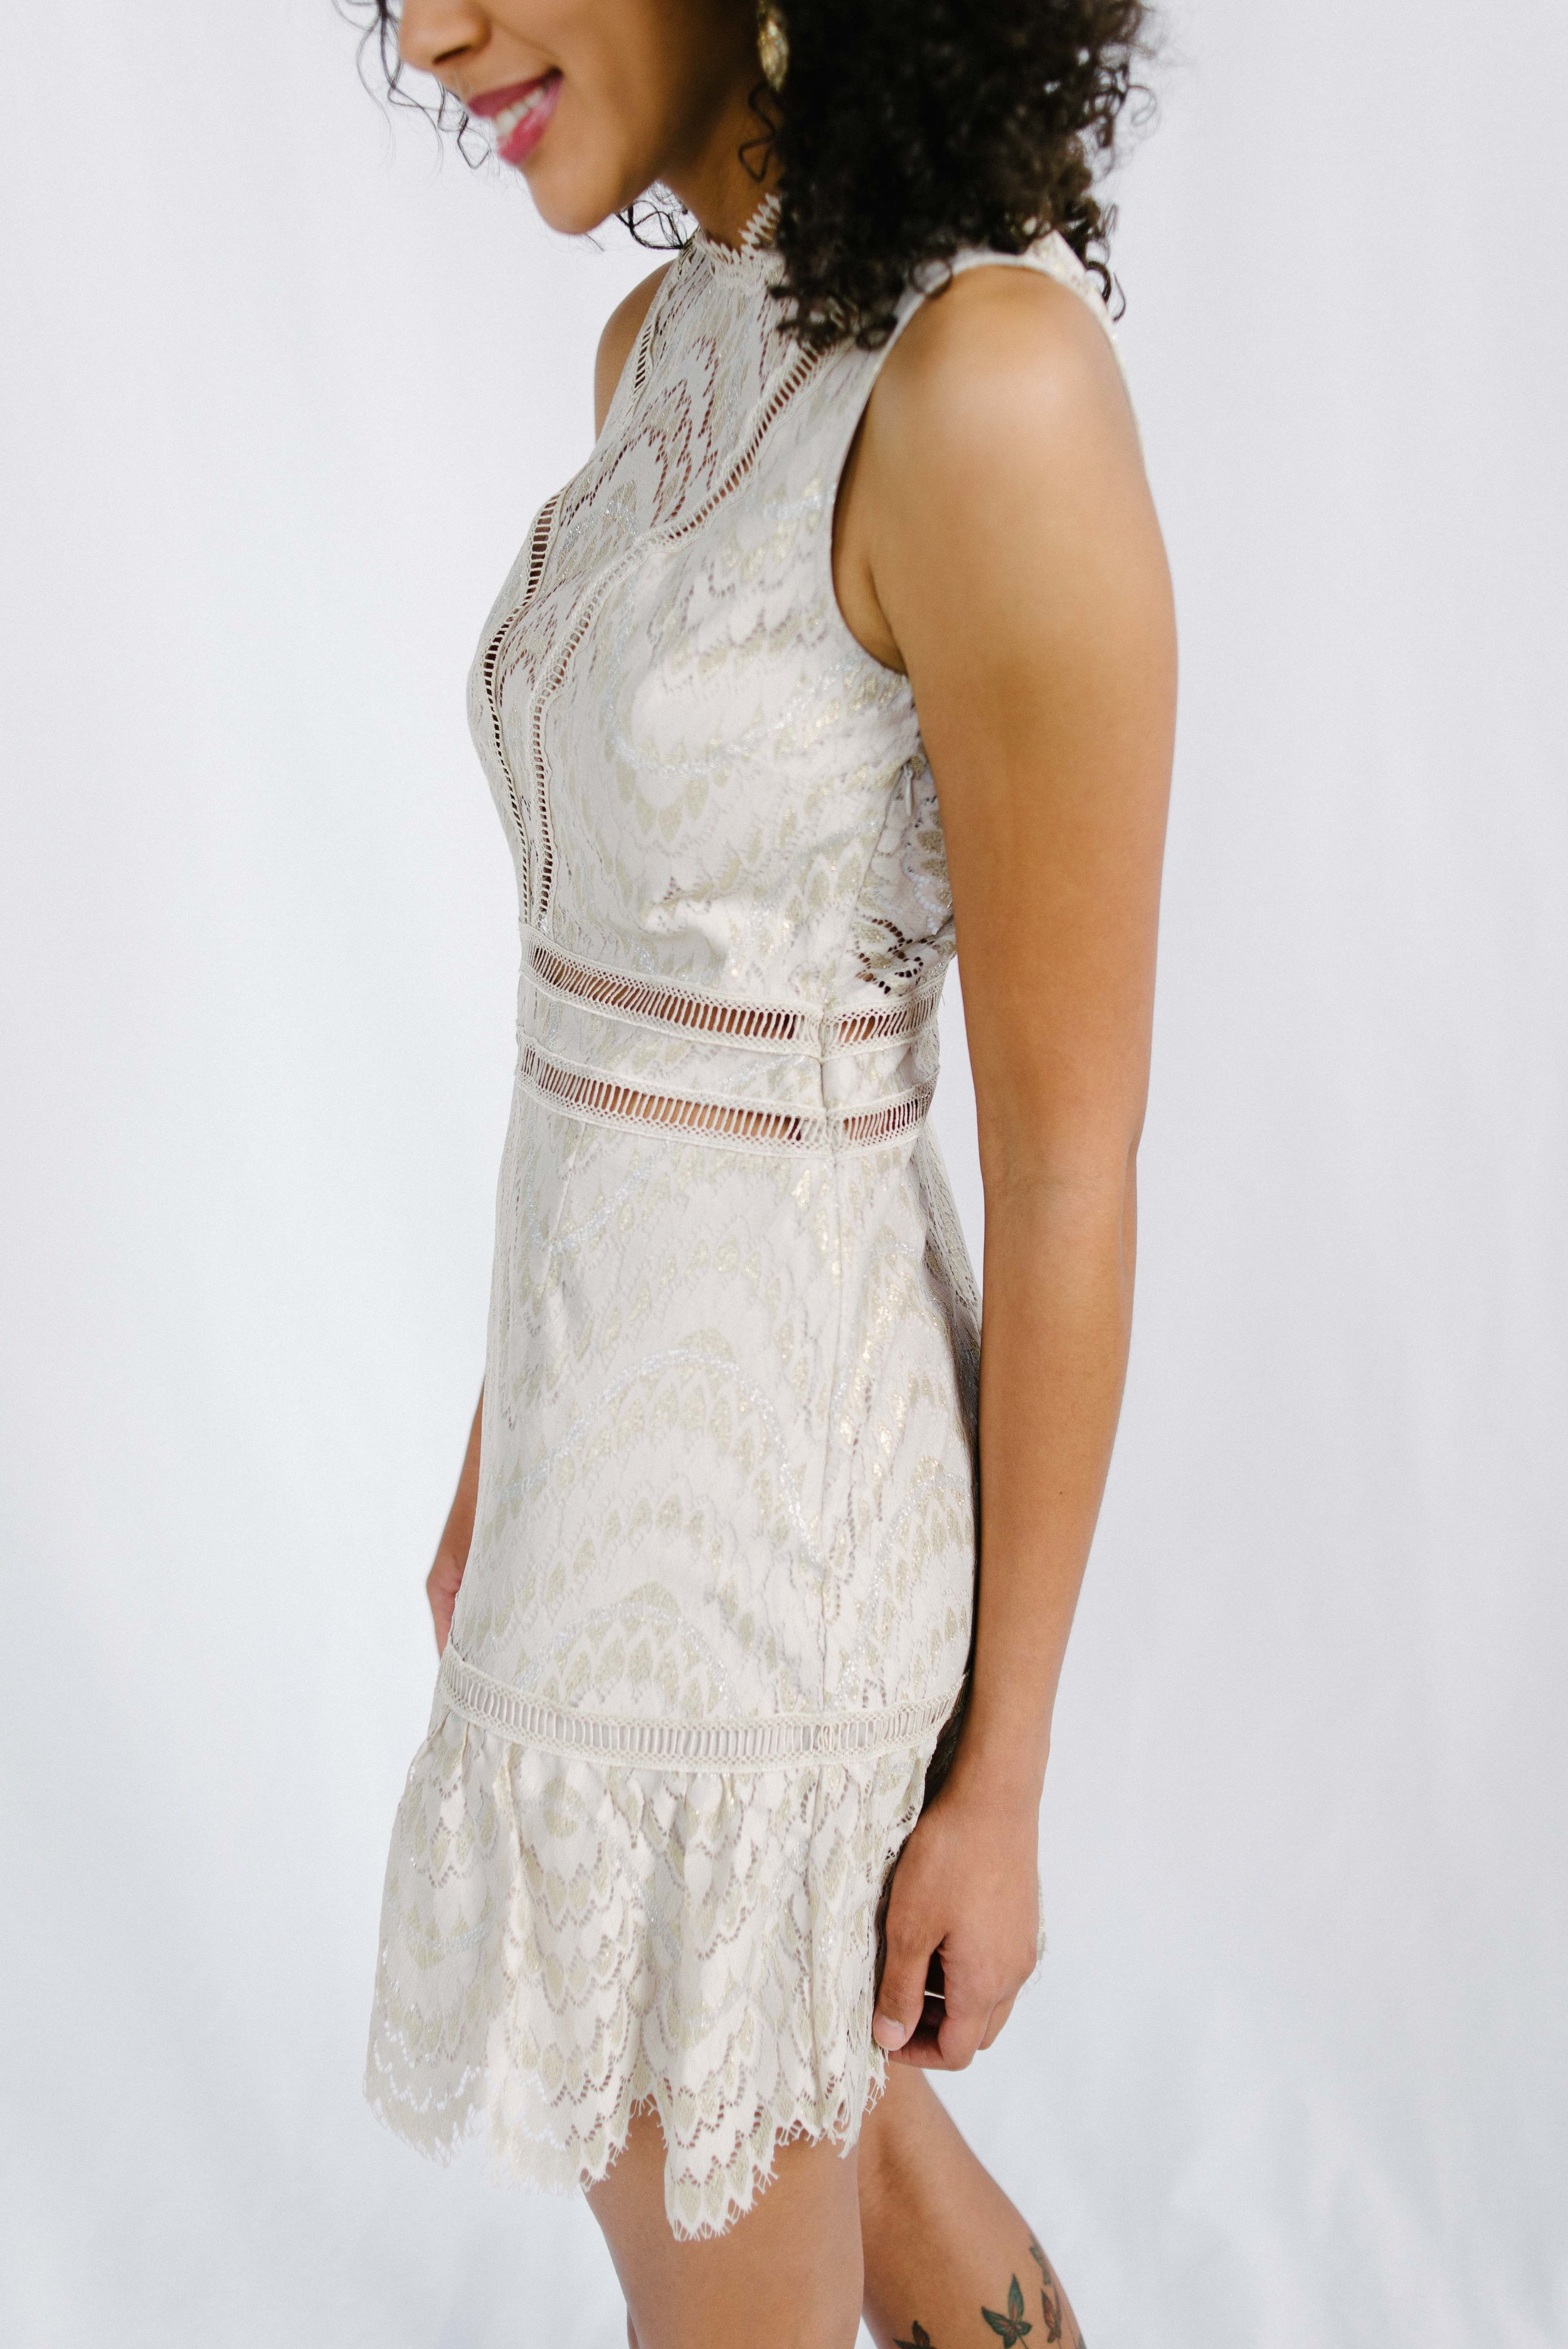 Saylor Rosemary Champagne Dress Eden Boutique